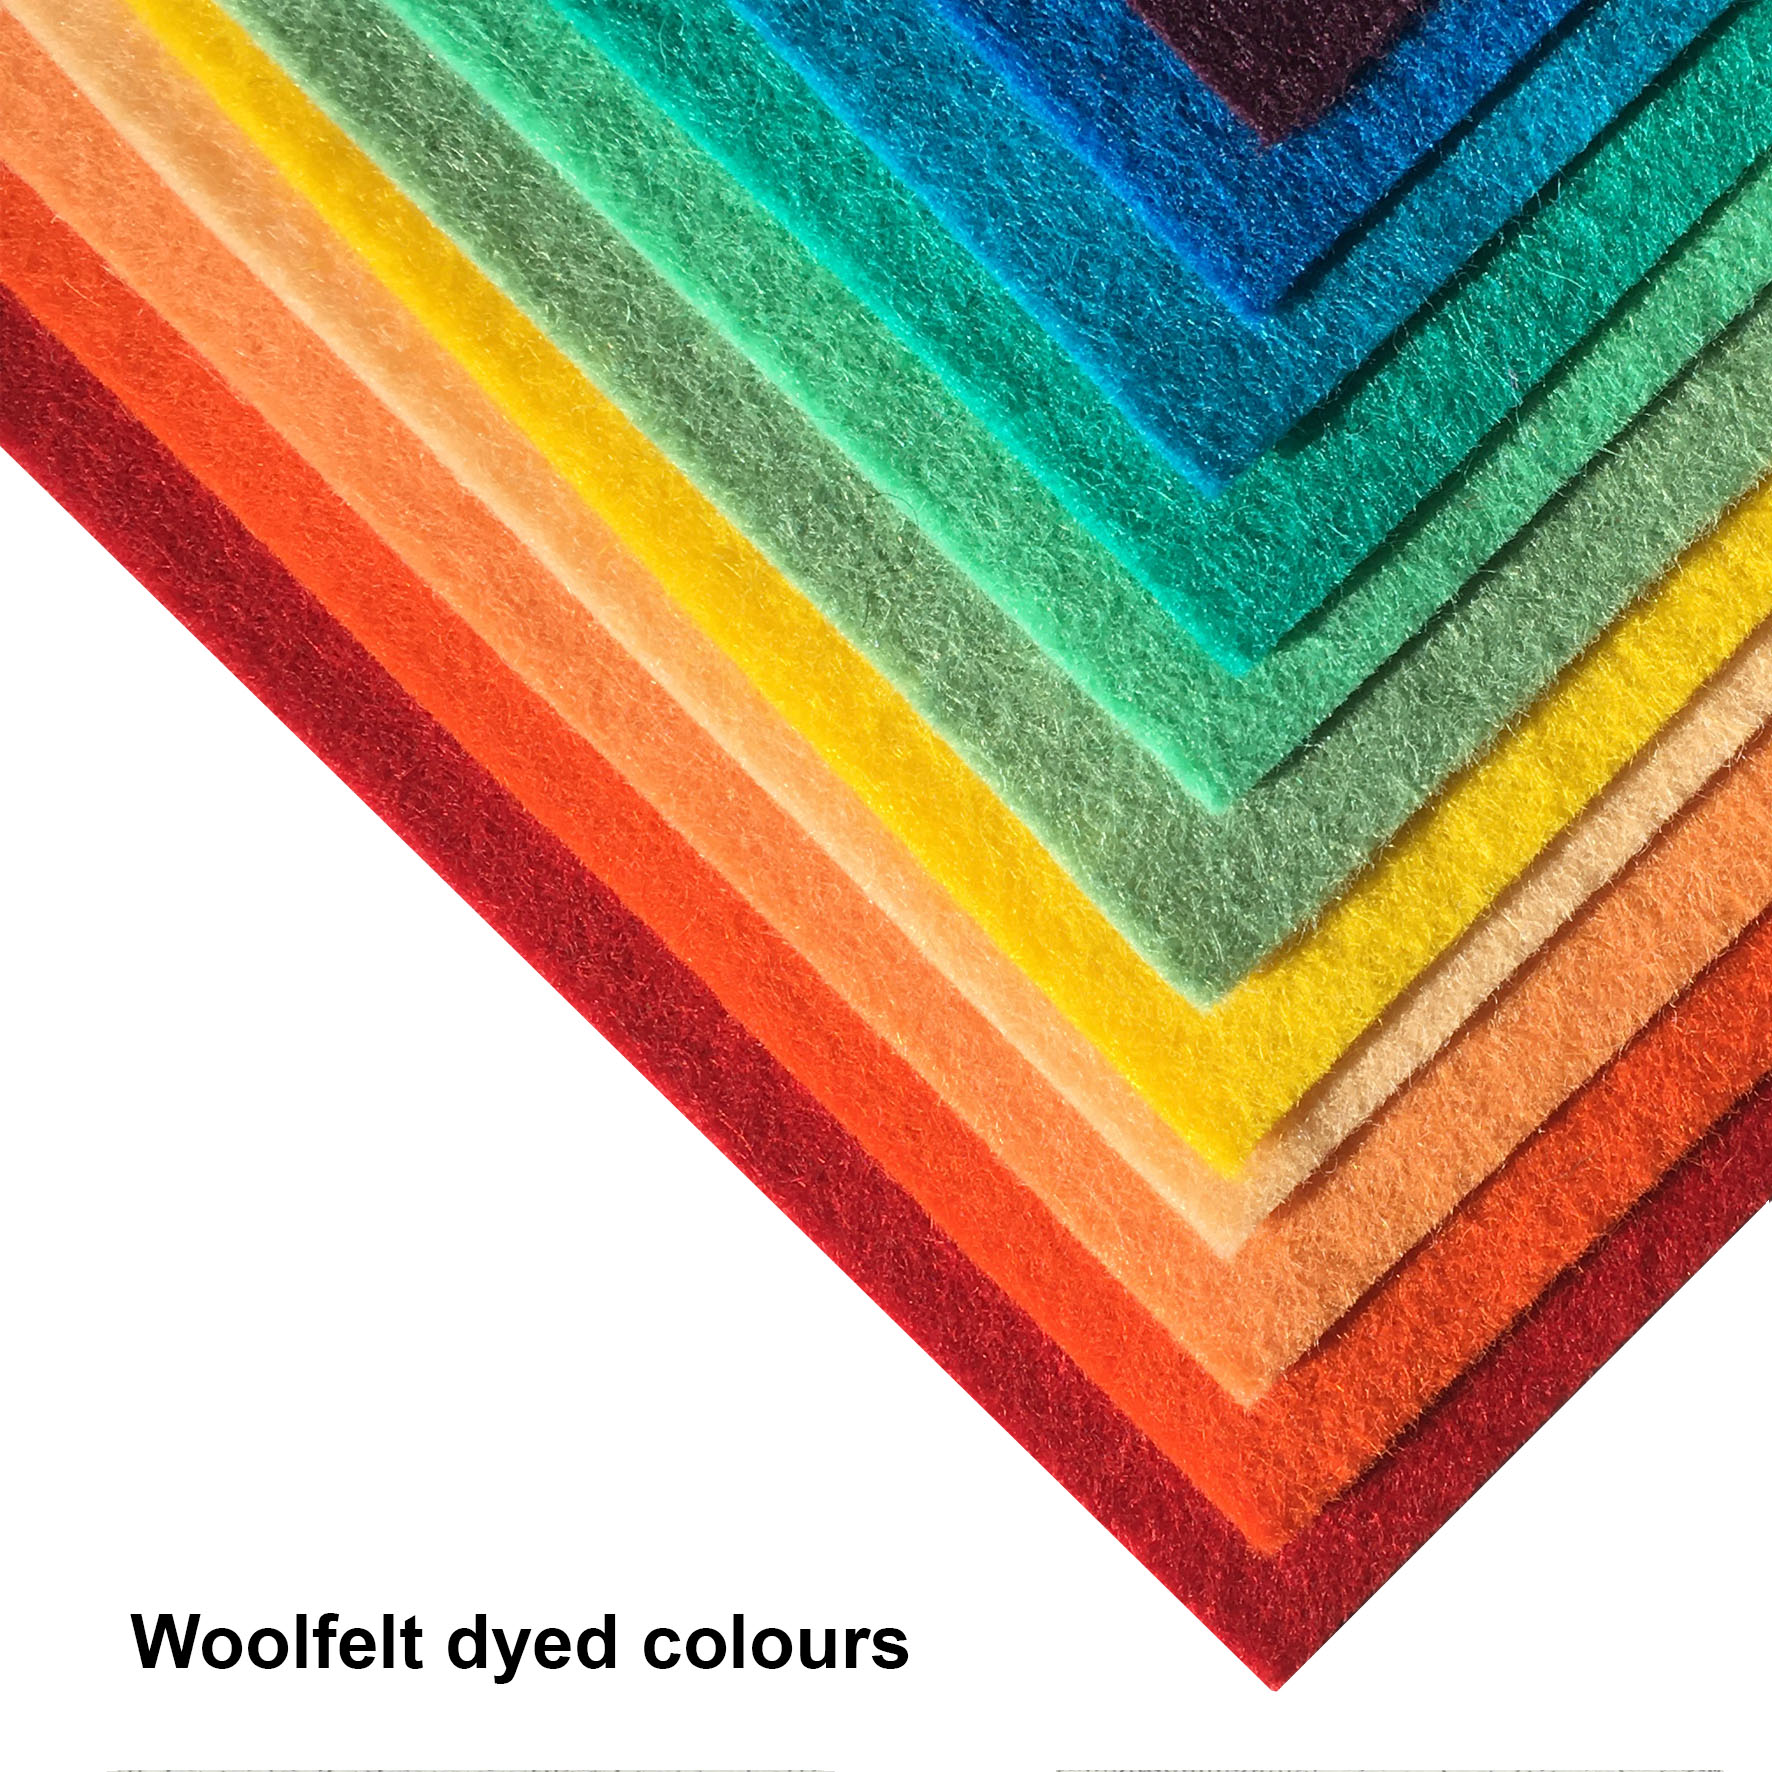 Woolfelt dyed colours